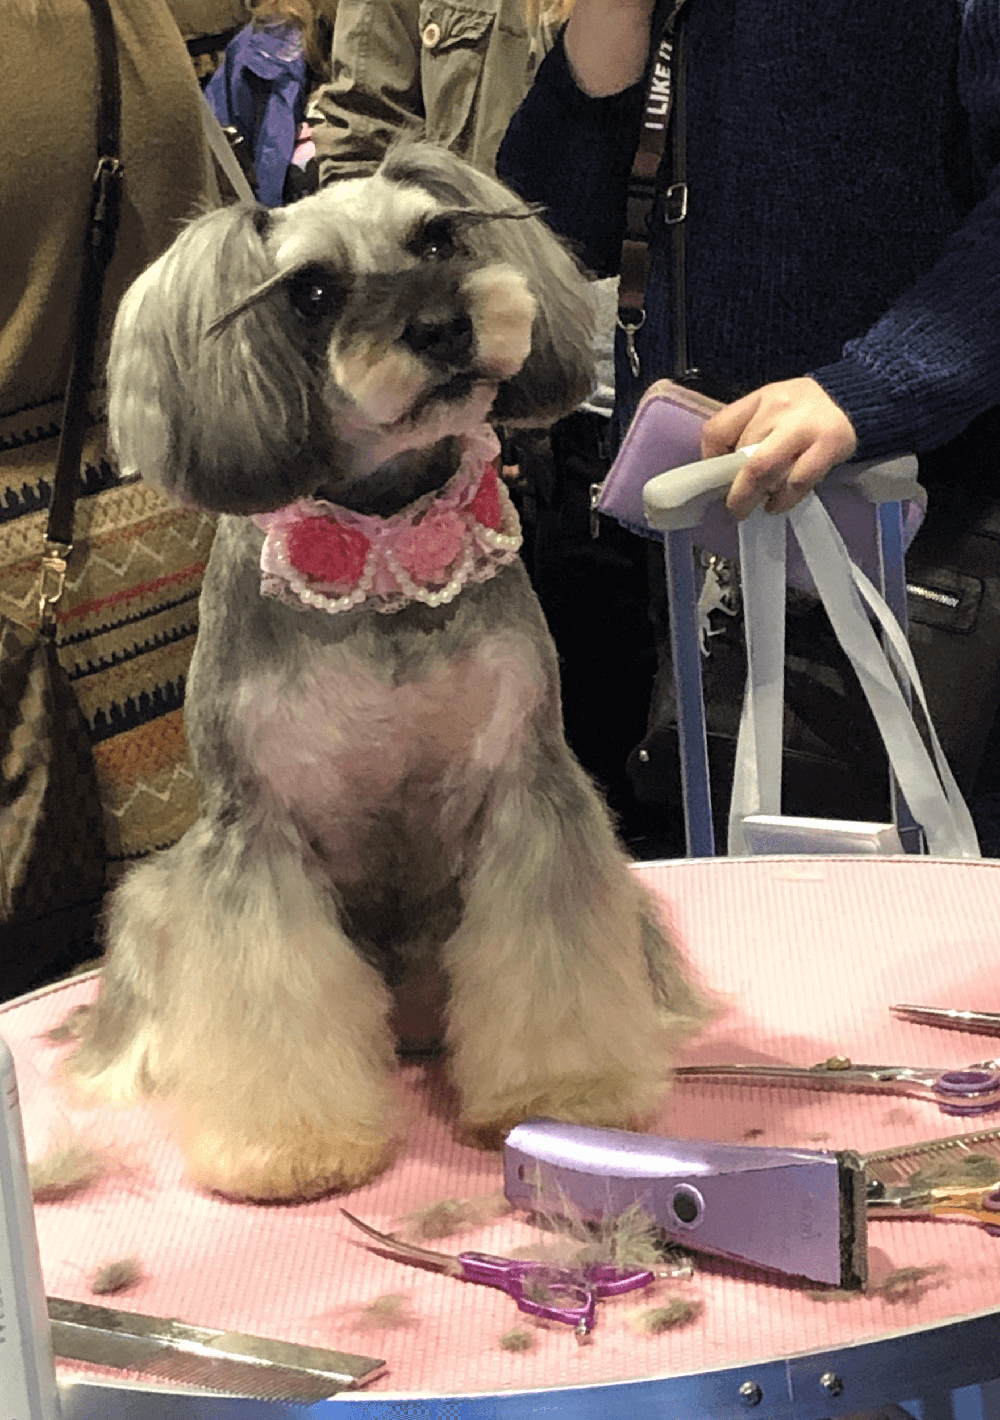 crufts 2019 in pictures and clips 7